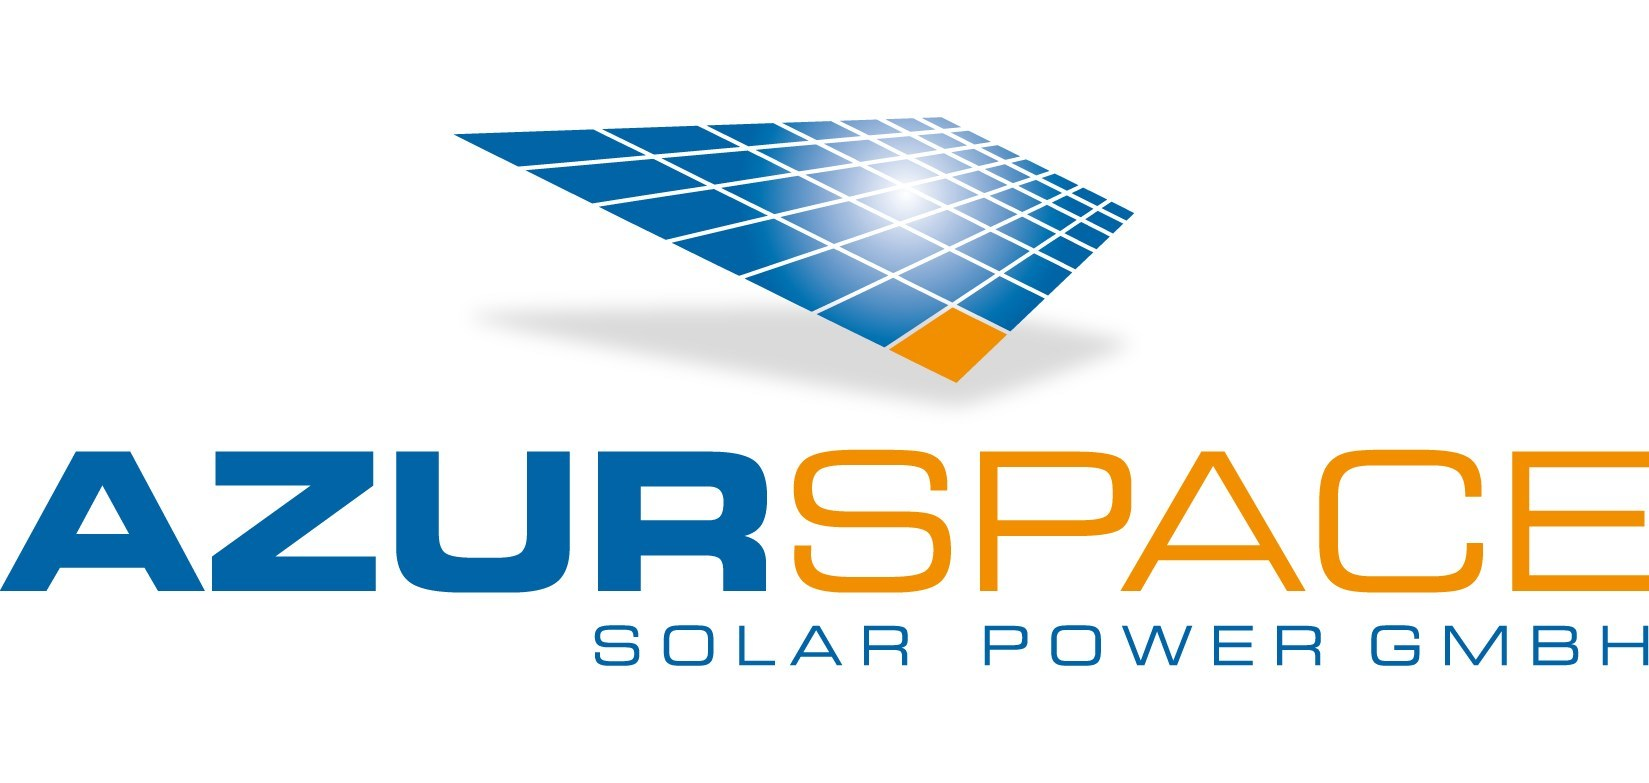 azur space solar power gmbh selected for solar cell long term purchase agreement by space. Black Bedroom Furniture Sets. Home Design Ideas